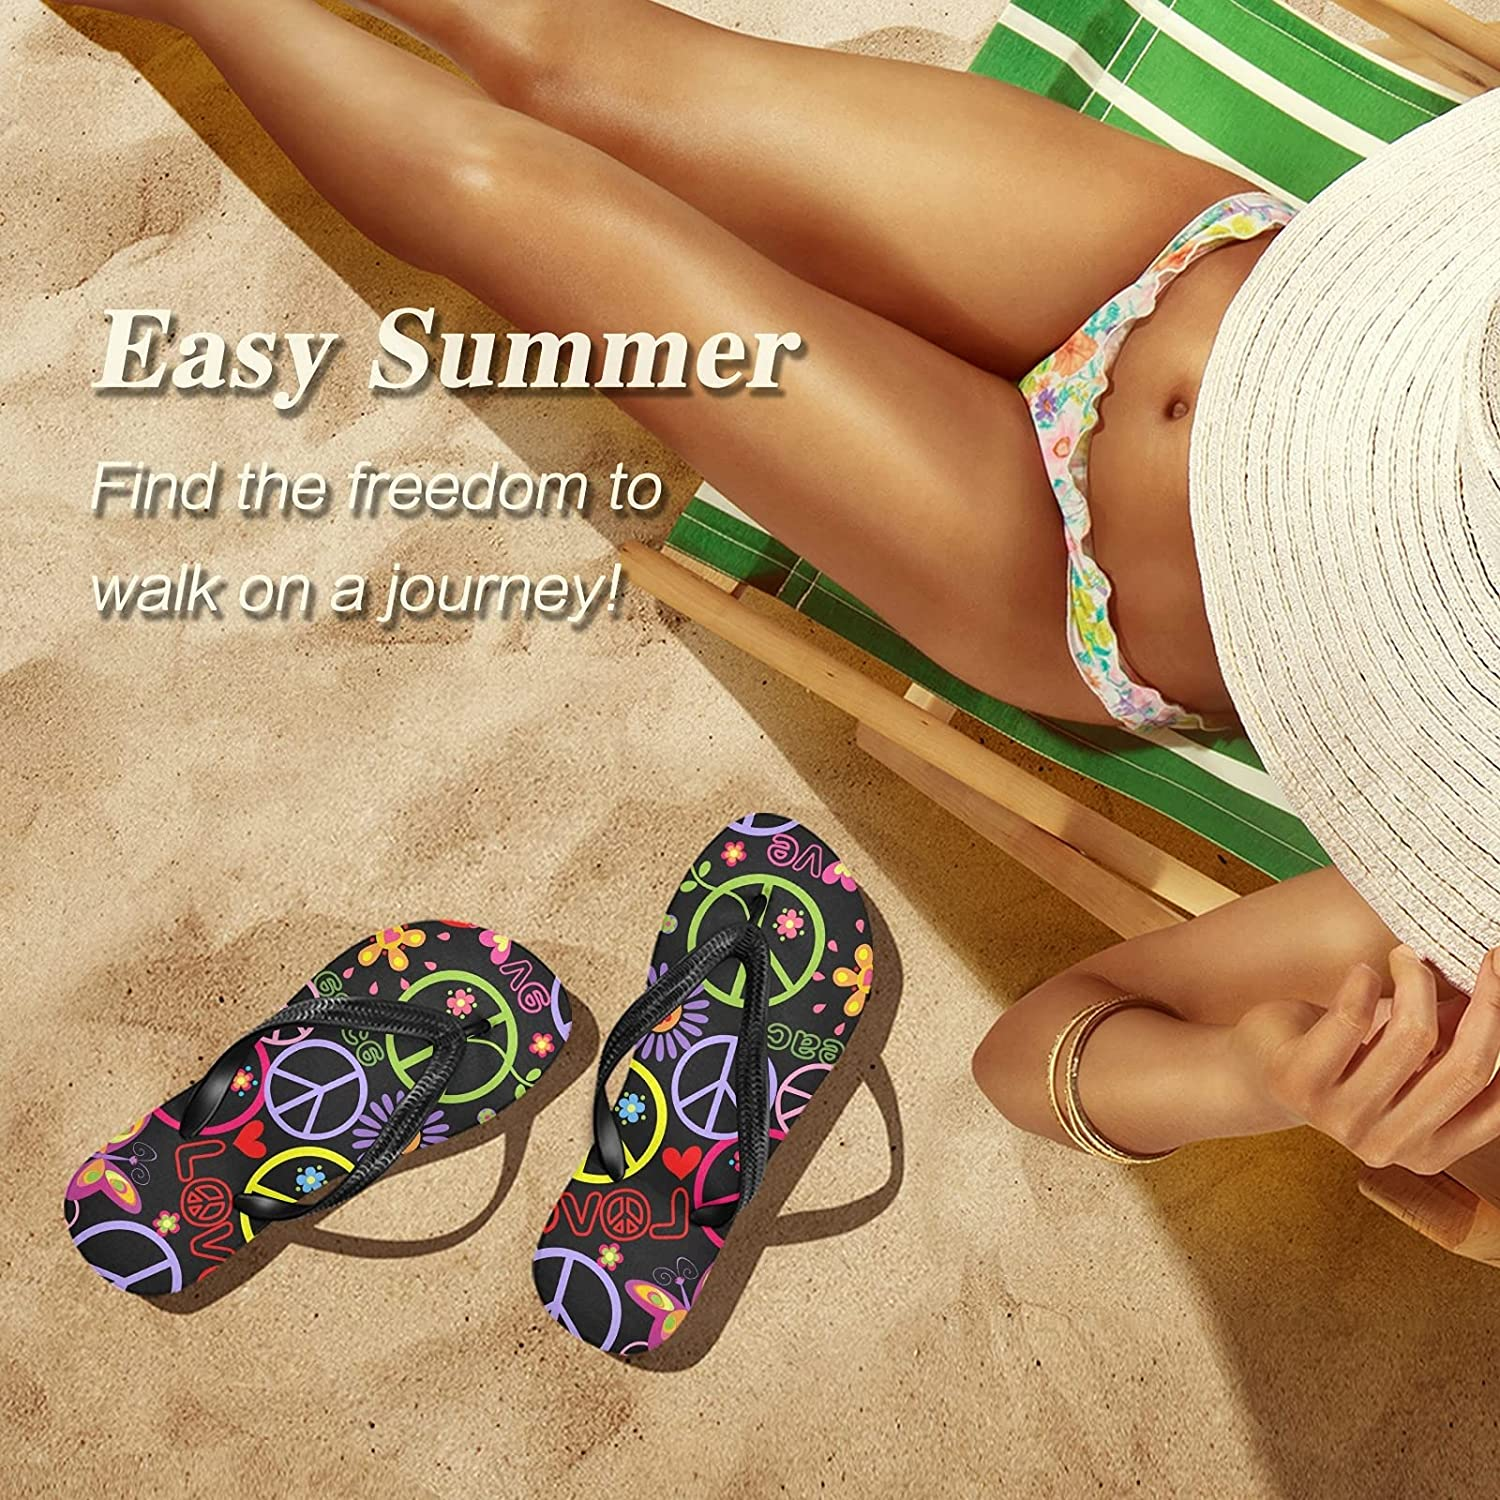 CCDMJ Womens Mens Sandals Peace Sign Floral Flip Flop Comfort Non-Slip Slides Casual Summer Slippers Thong for Beach Swim Indoor Outdoor